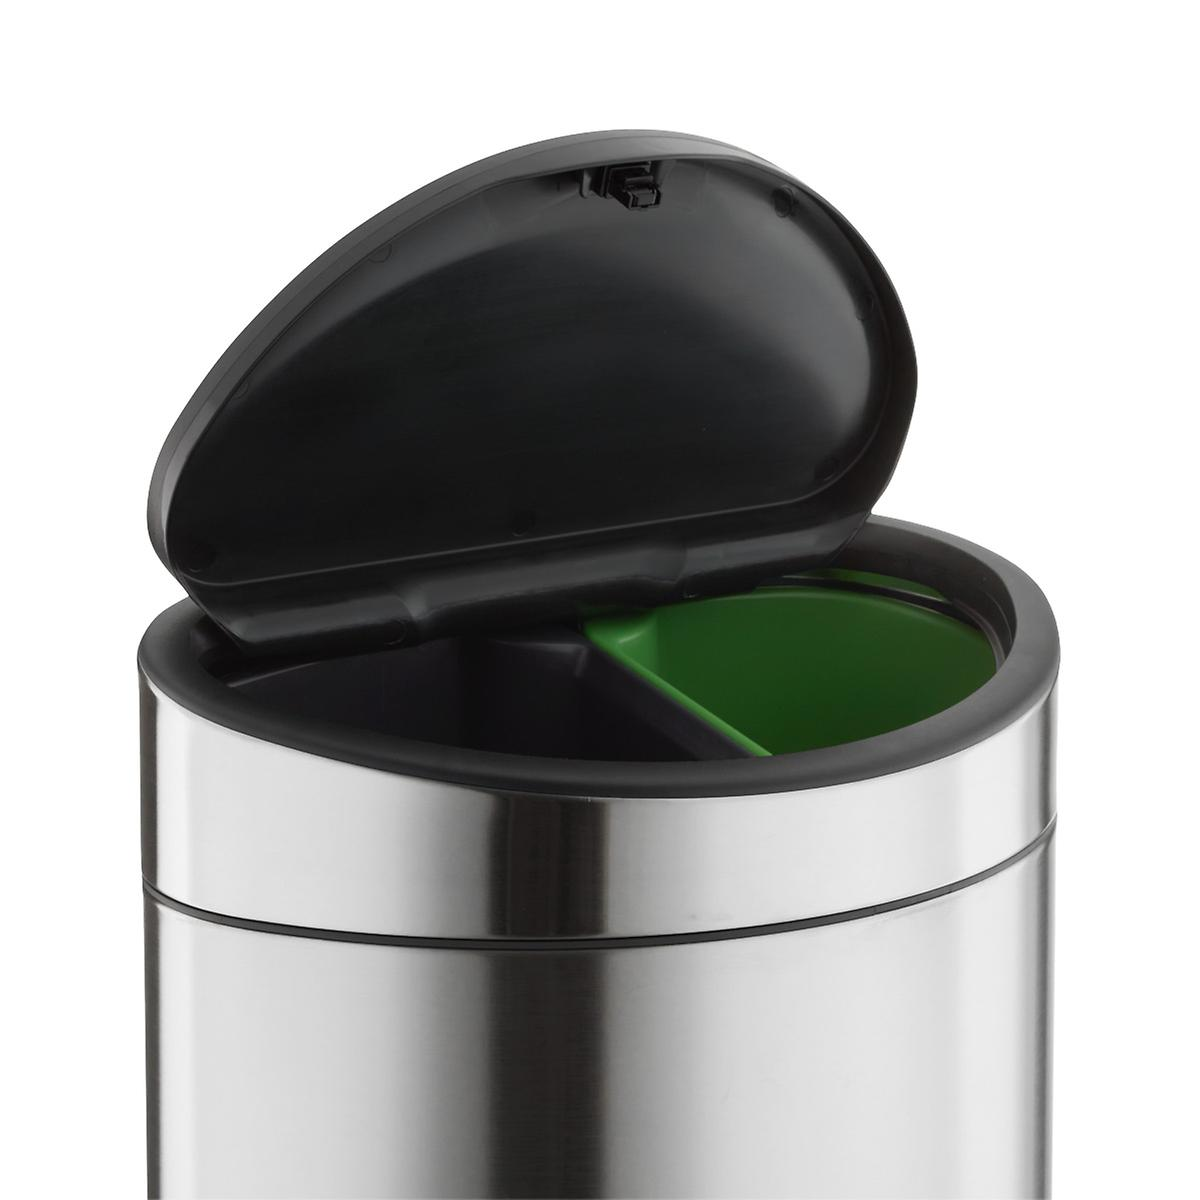 Brabantia Stainless Steel 8.6 gal./33L Touch-Top Dual Recycle Bin